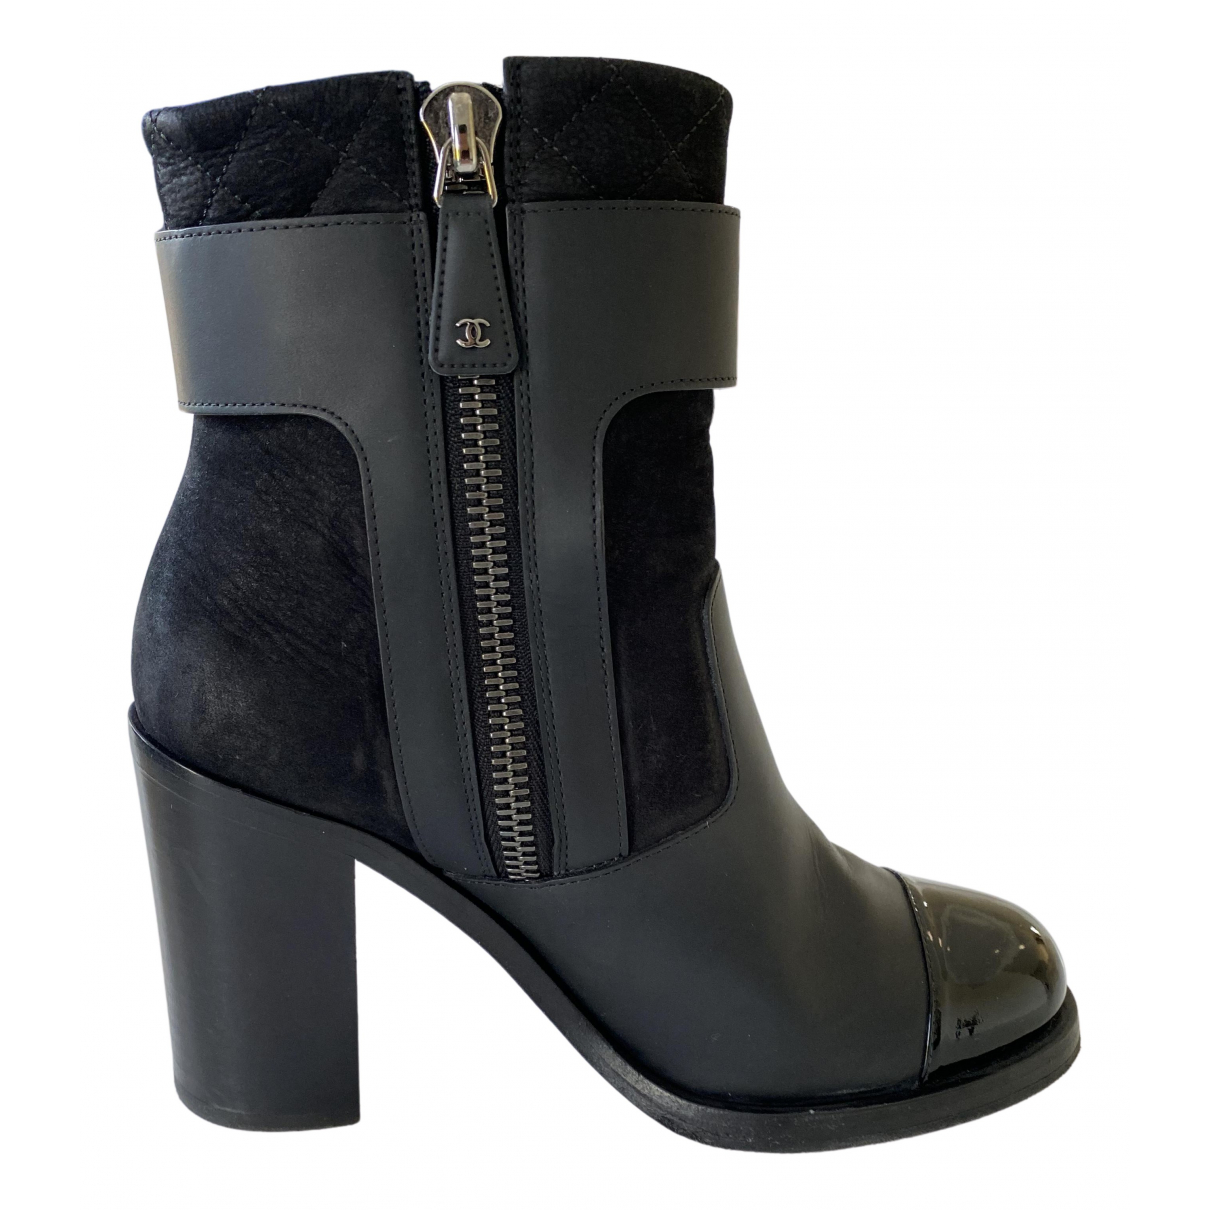 Chanel \N Stiefeletten in  Schwarz Lackleder